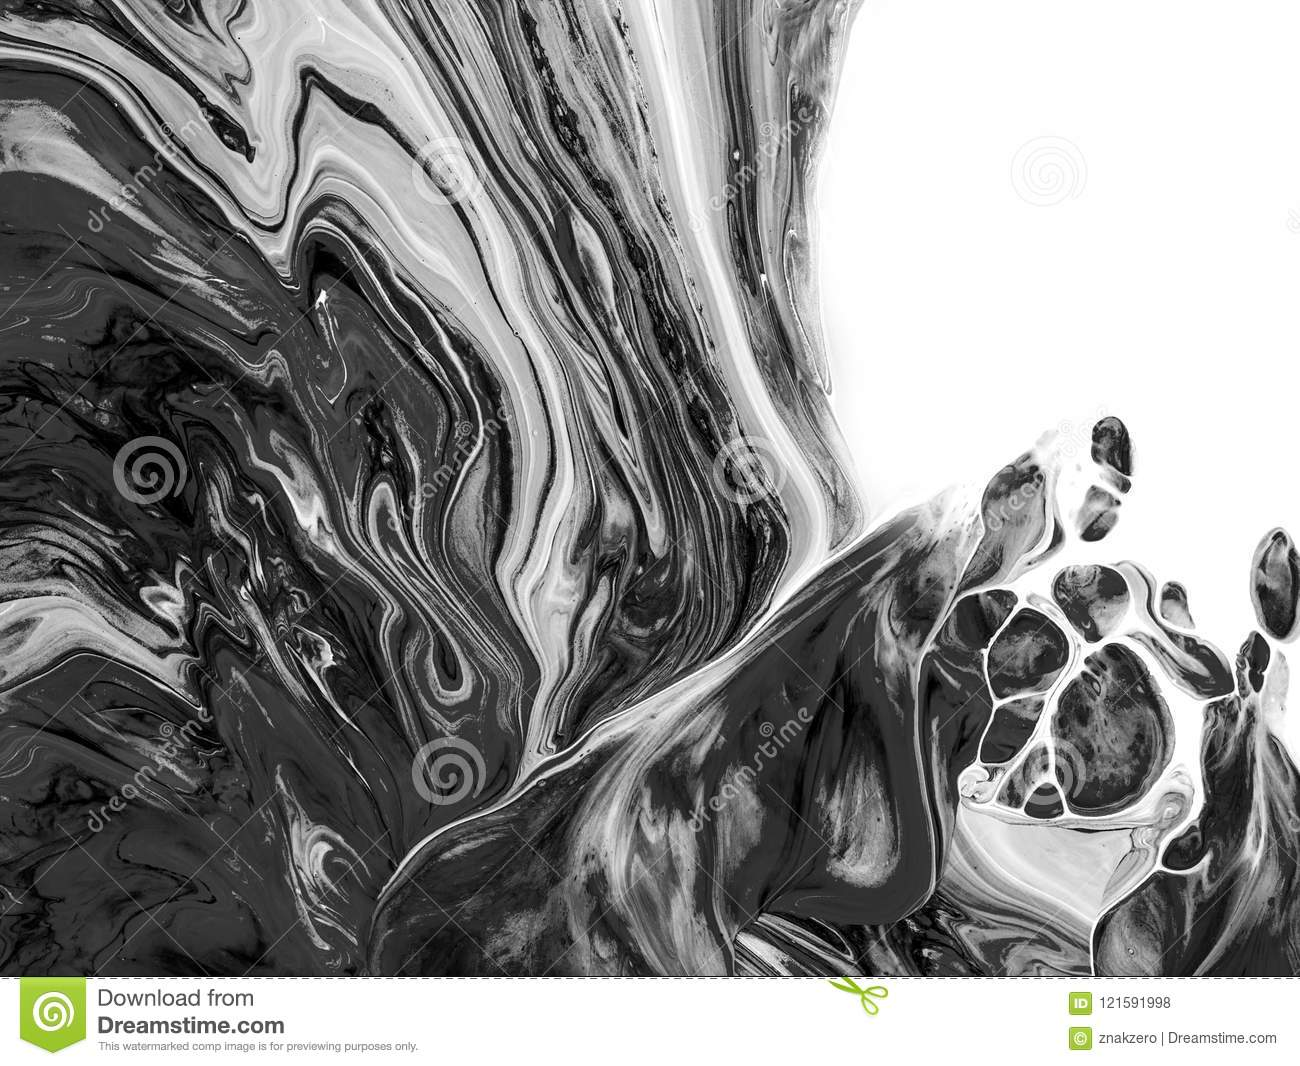 Black and white abstract painted background wallpaper texture modern art